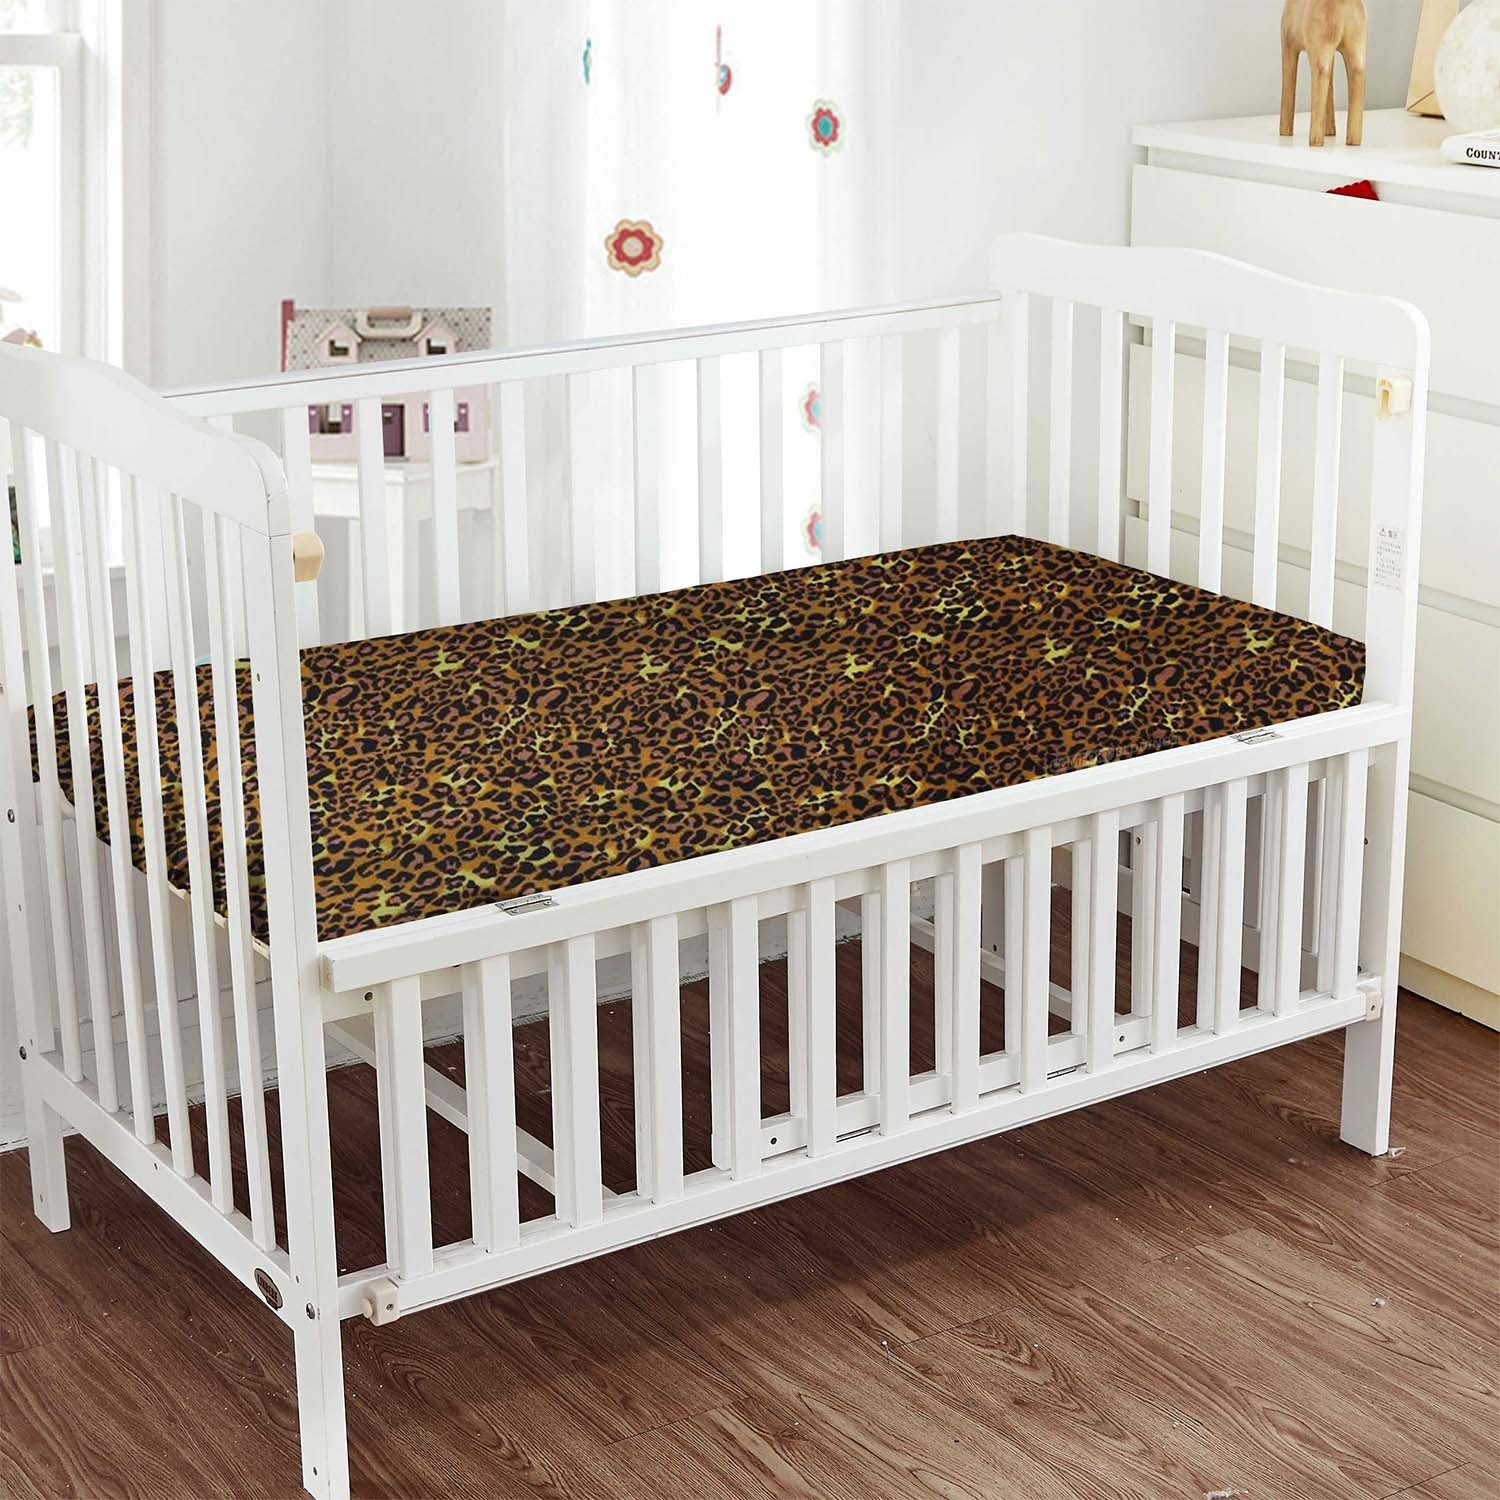 Luxurious Leopard Print Fitted Crib Sheets - 800TC